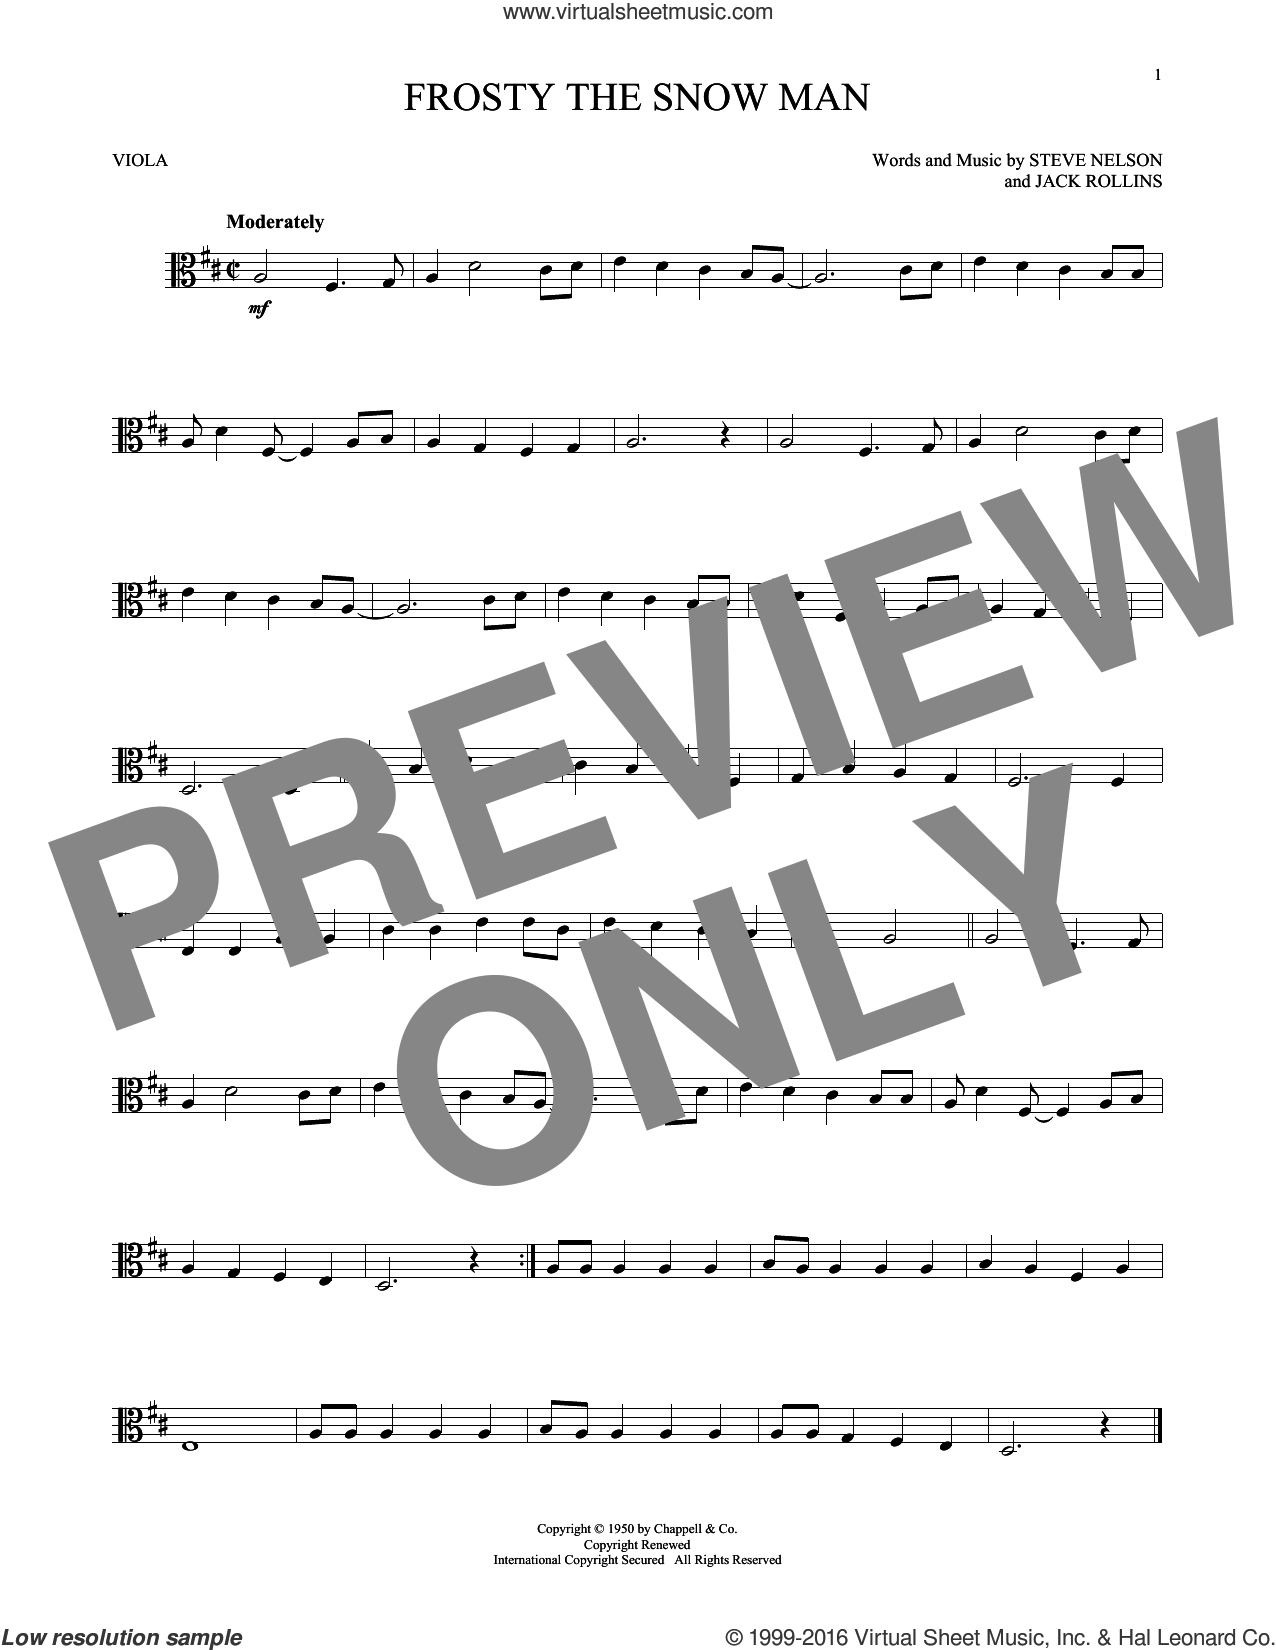 Frosty The Snow Man sheet music for viola solo by Steve Nelson